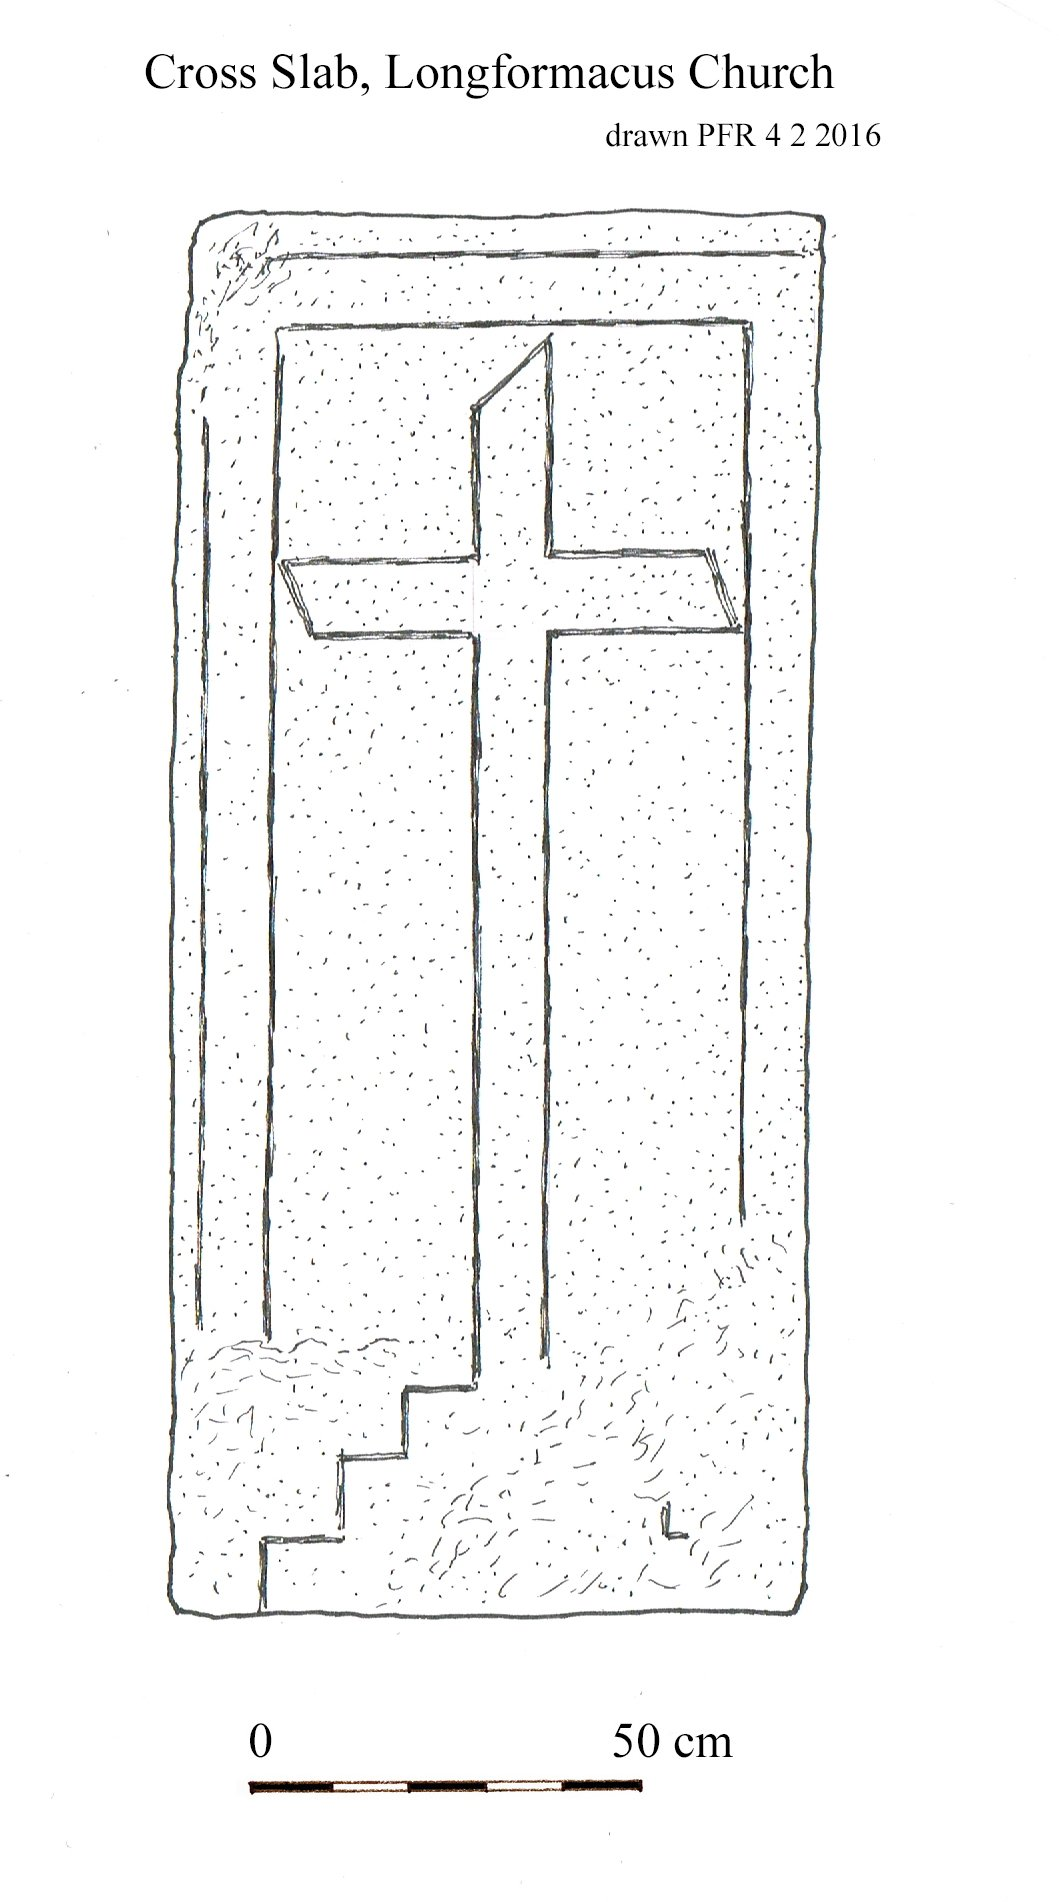 22 Image 2 Longformacus grave slabs with cross of pain motif